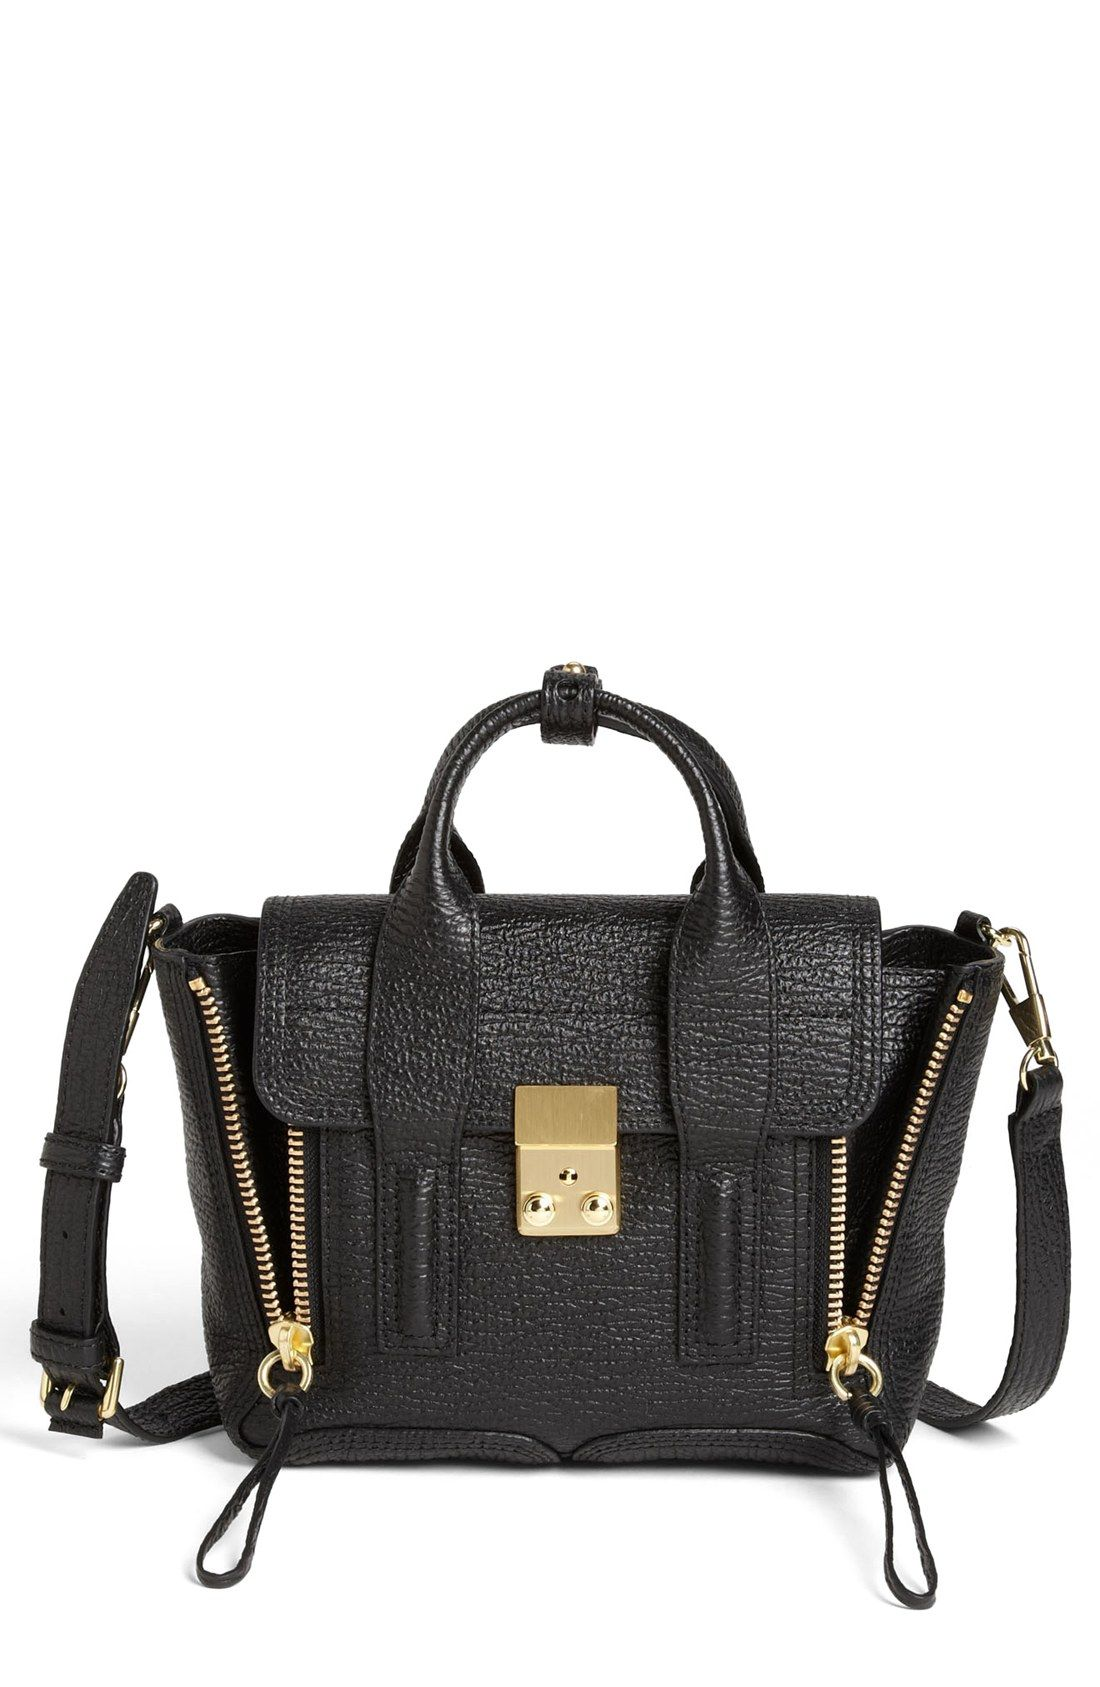 Richly textured leather, gleaming gold hardware and a compact satchel style  create a fabulous on trend look.